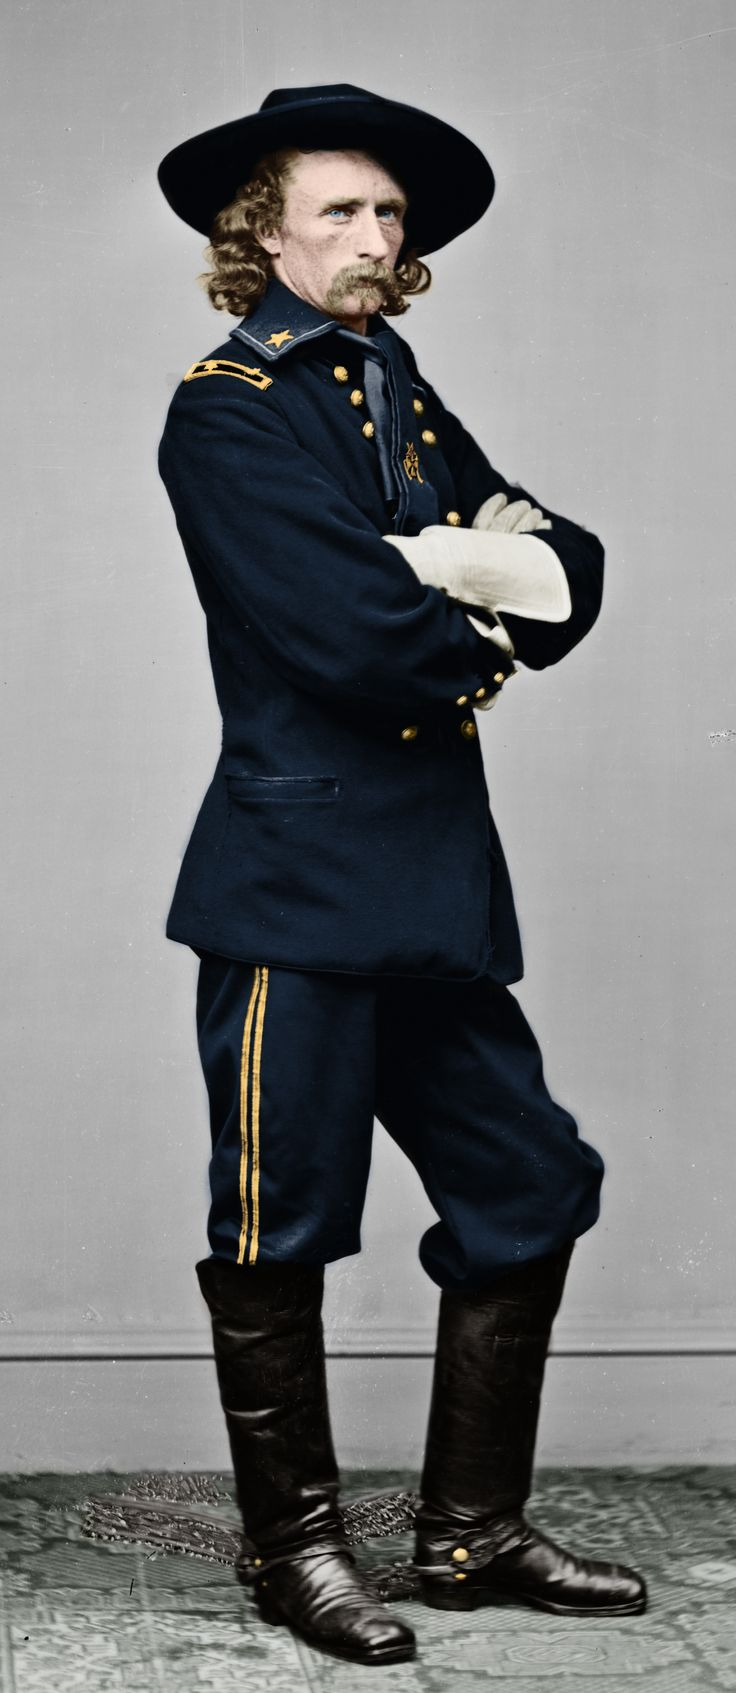 The Rock Star of the Civil War! George Armstrong Custer was the most photographed person of the war.Photographed more times than Abraham Lincoln!